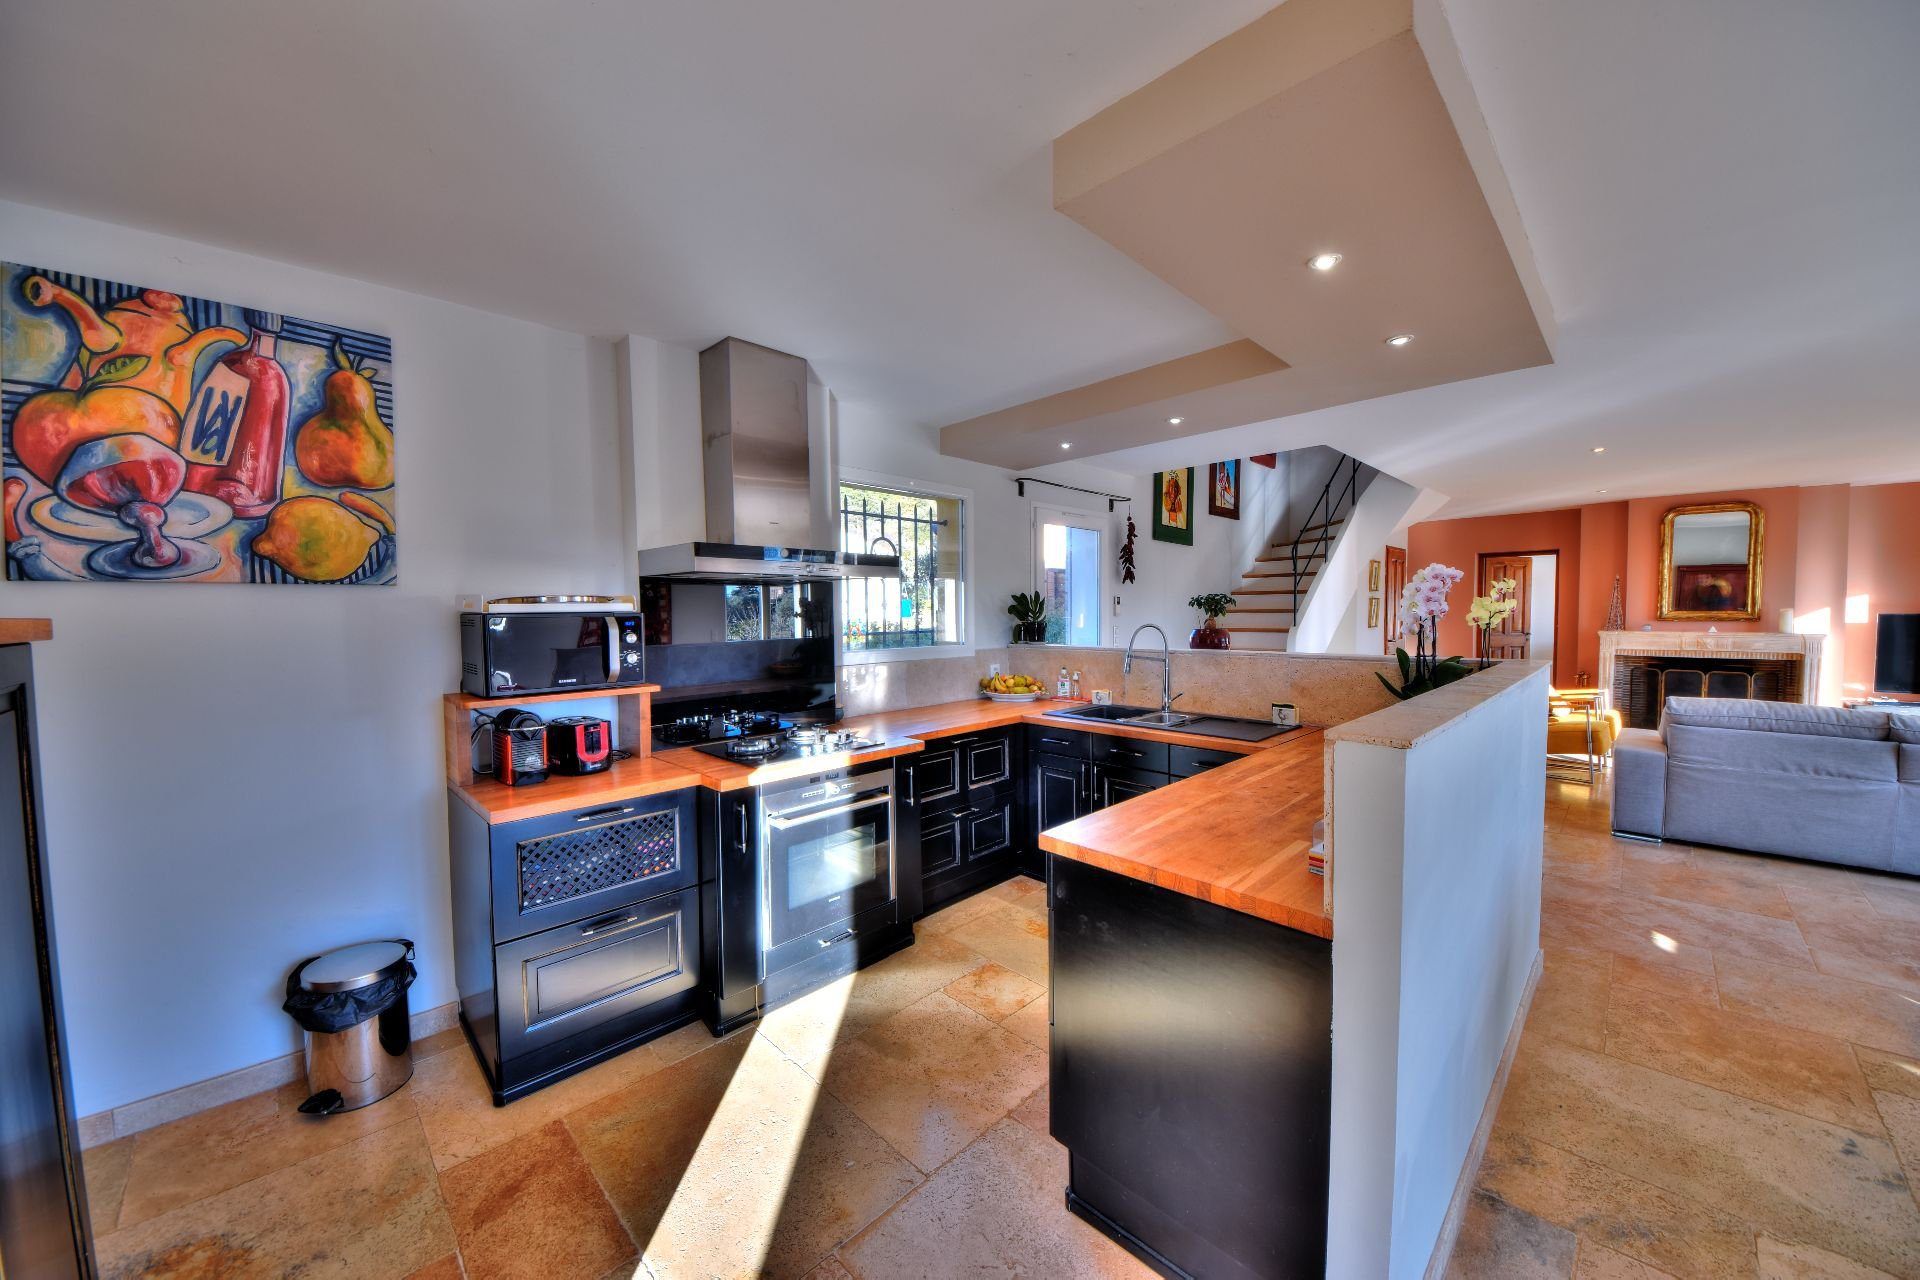 Kitchen equipped of the bastide 4 bedrooms with swimming pool Aups, Var, Provence